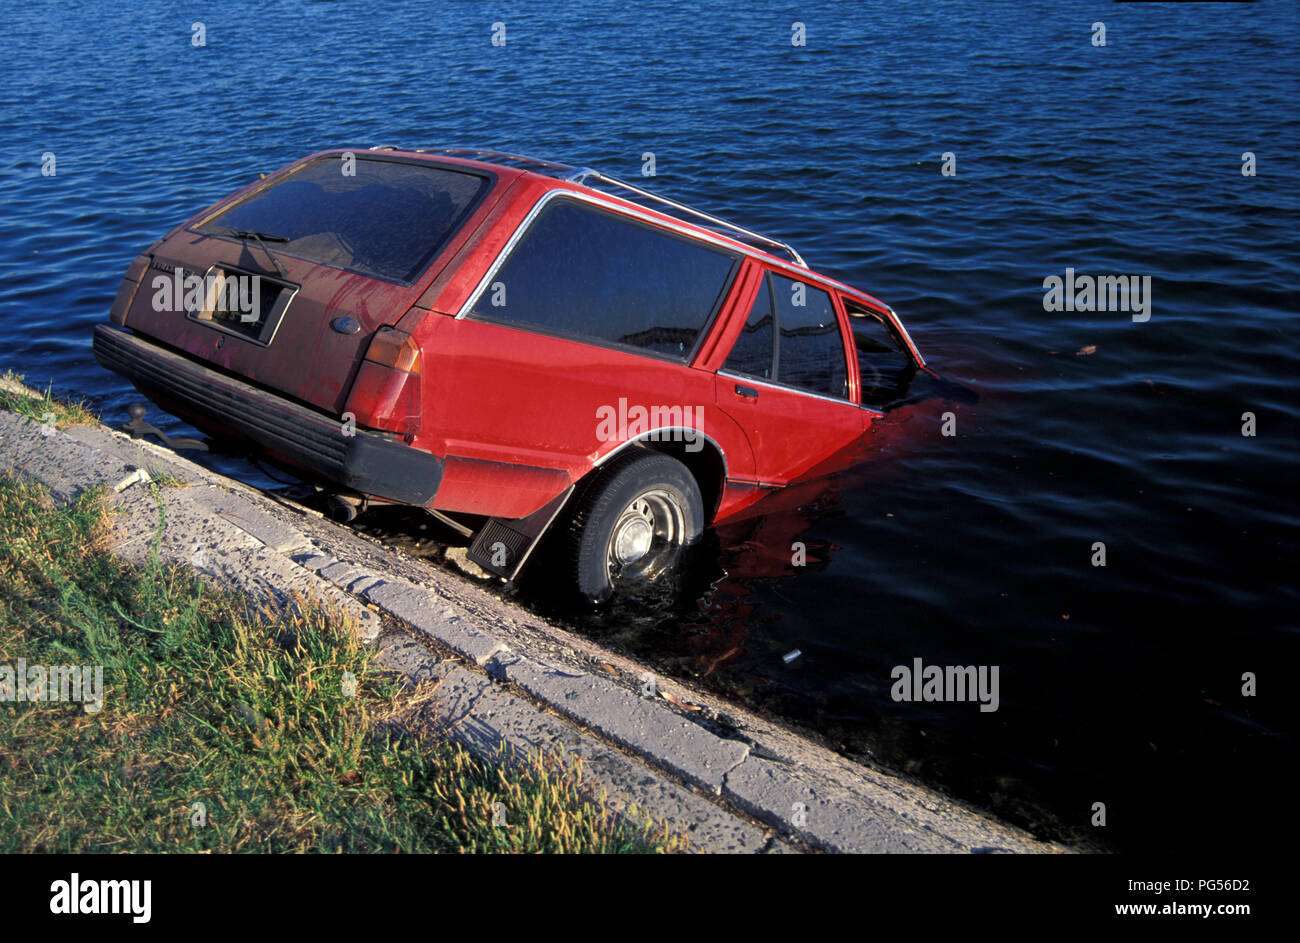 Red Station Wagon Vehicle Partly Submerged In A River In New South Wales Australia Stock Photo Alamy